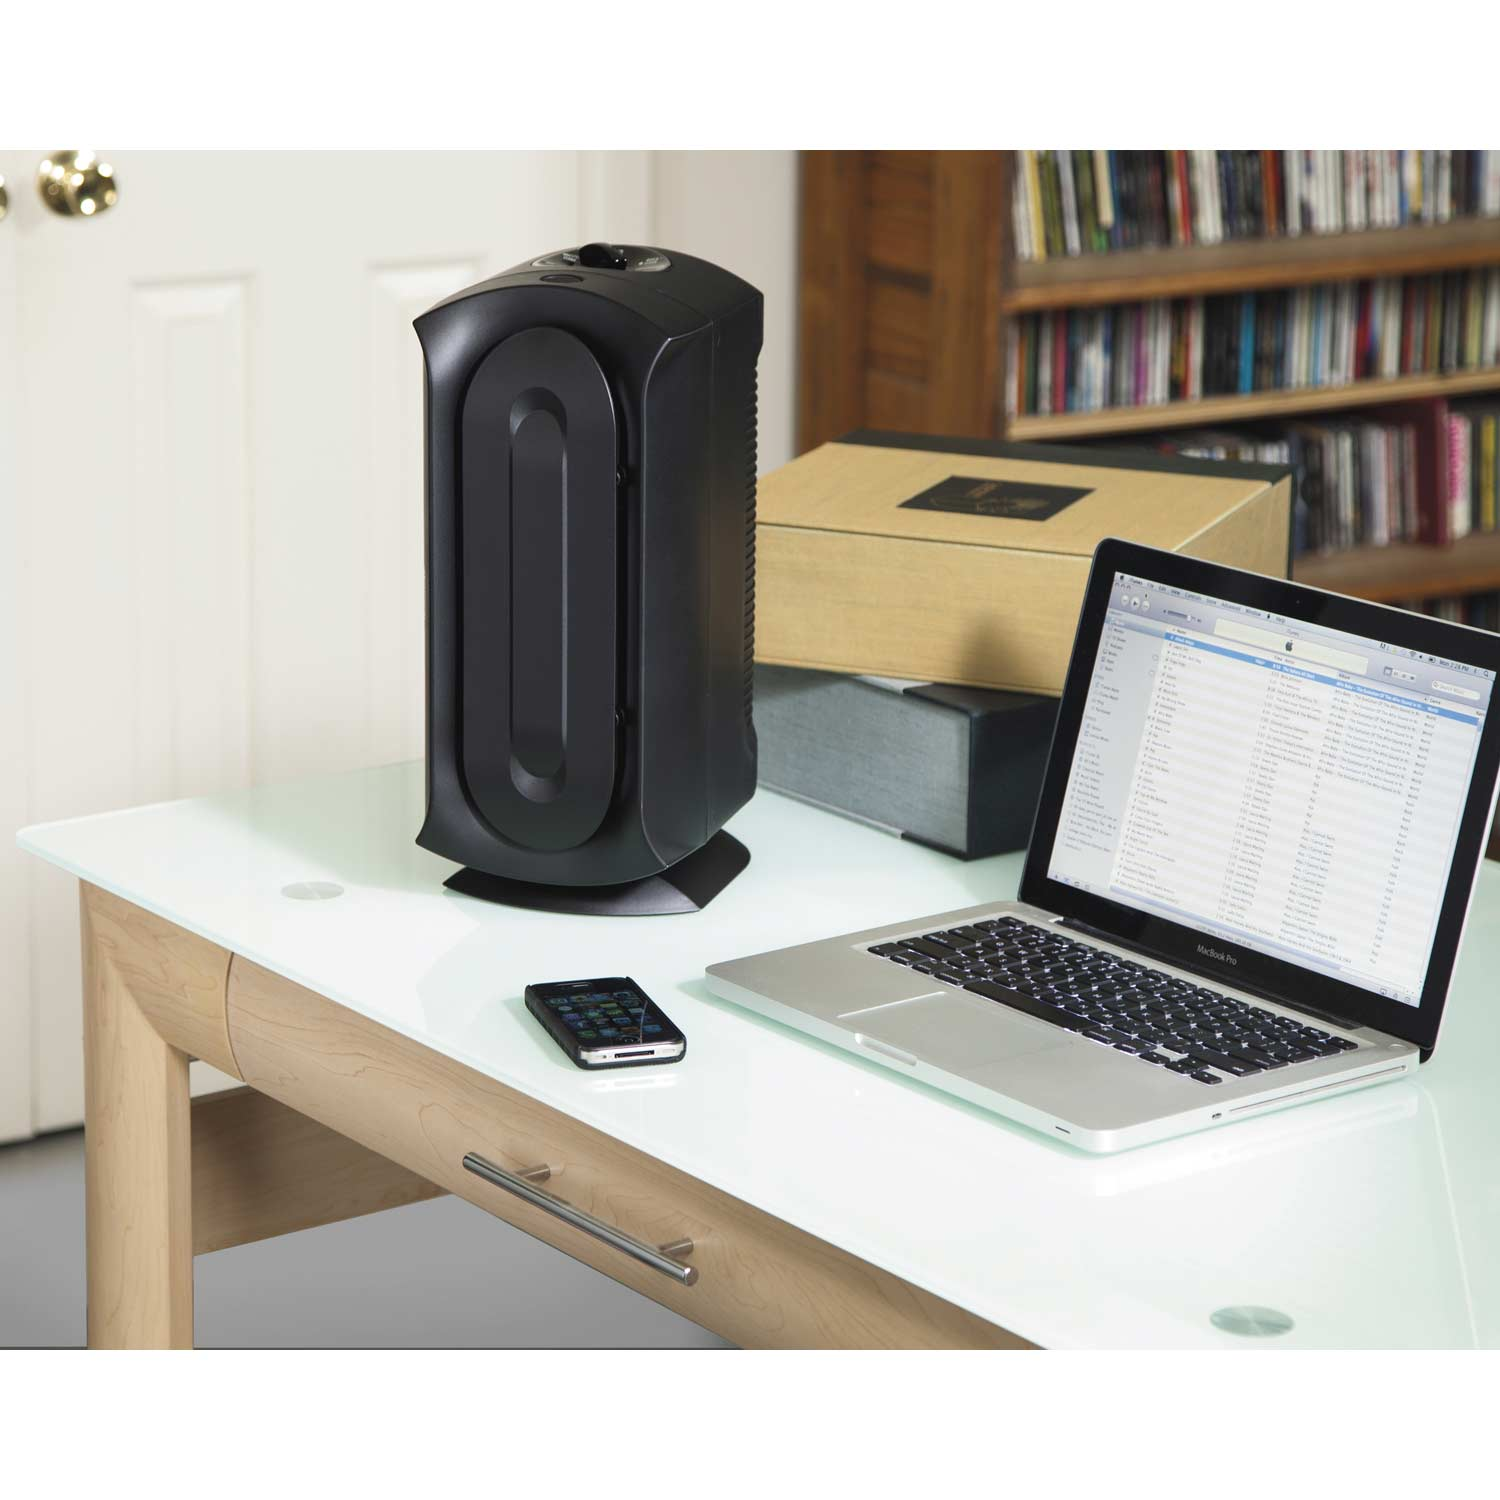 TrueAir Air Purifier 04386 is compact and ideal for any office or work space.